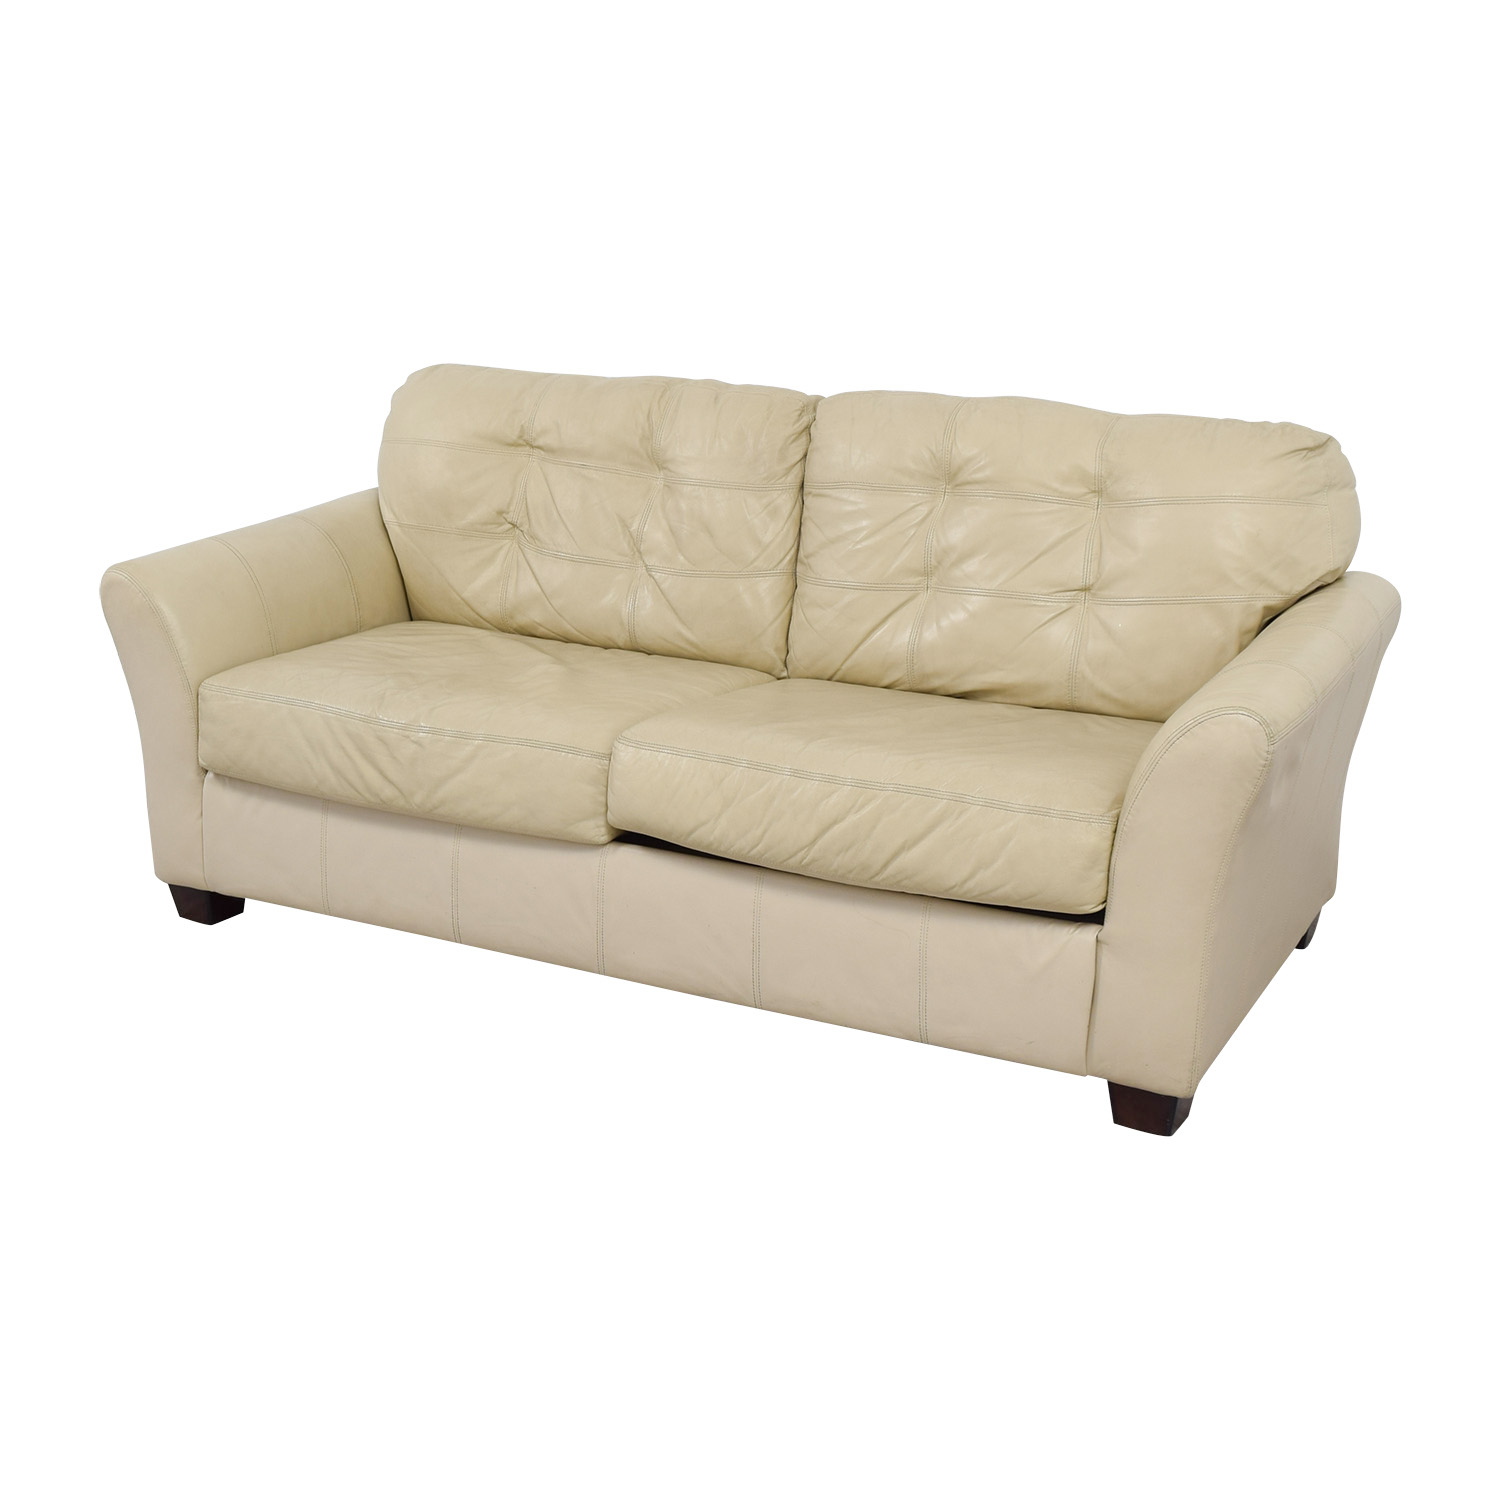 90 Off Ashley Furniture Ashley Furniture Tufted Cream Leather Two Cushion Sofa Sofas